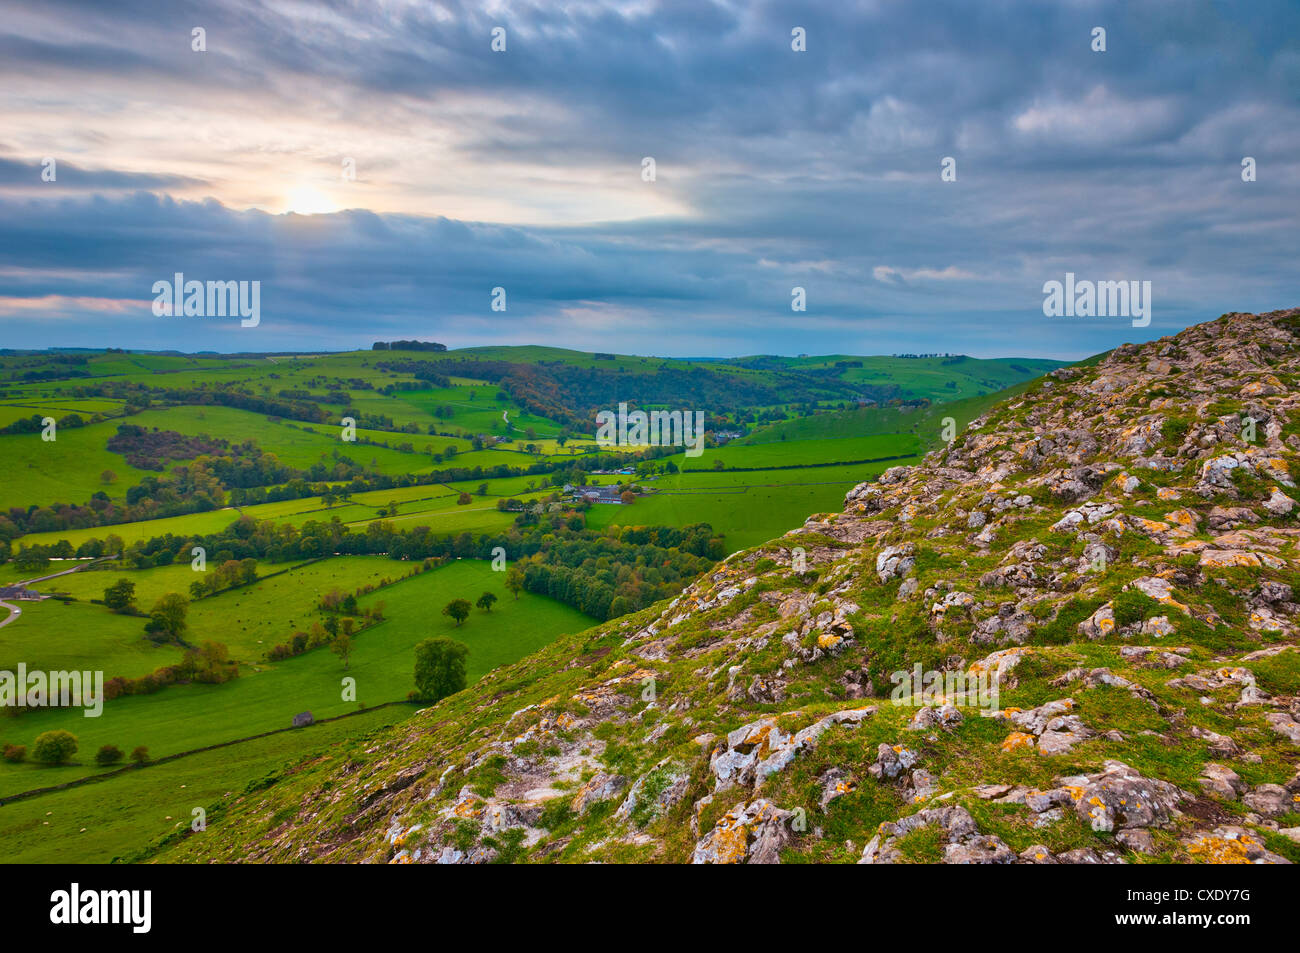 River Manifold Valley near Ilam from Thorpe Cloud, Peak District National Park, Derbyshire, England, UK Stock Photo